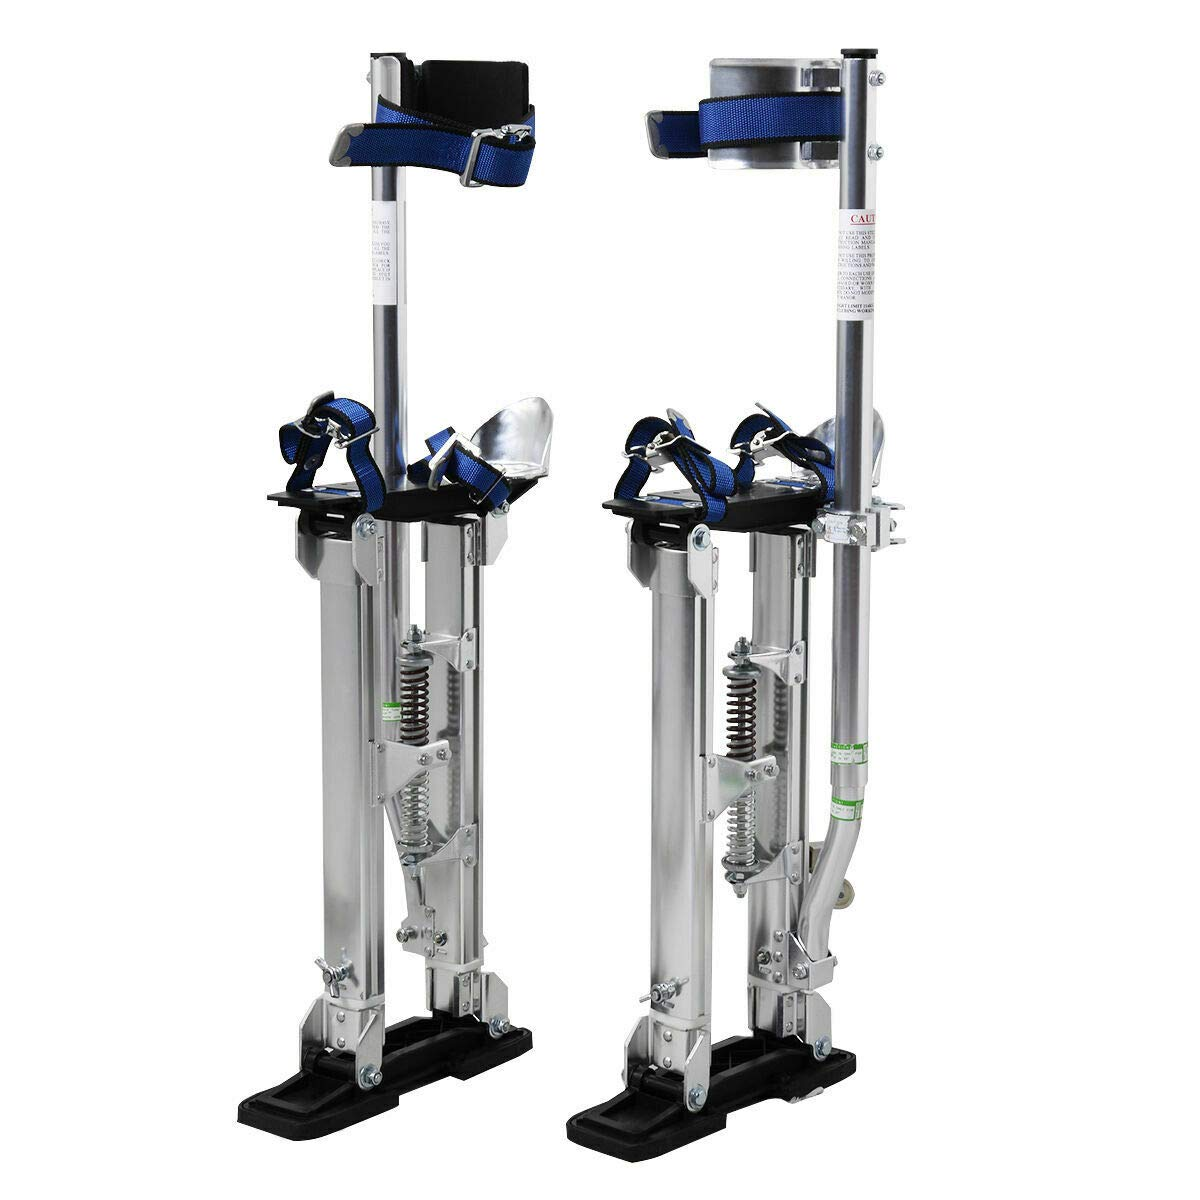 thebestshop99 Silver Drywall Stilts Aluminum Tool Stilt For Painting Painter Walking Taping 24-40 Inch